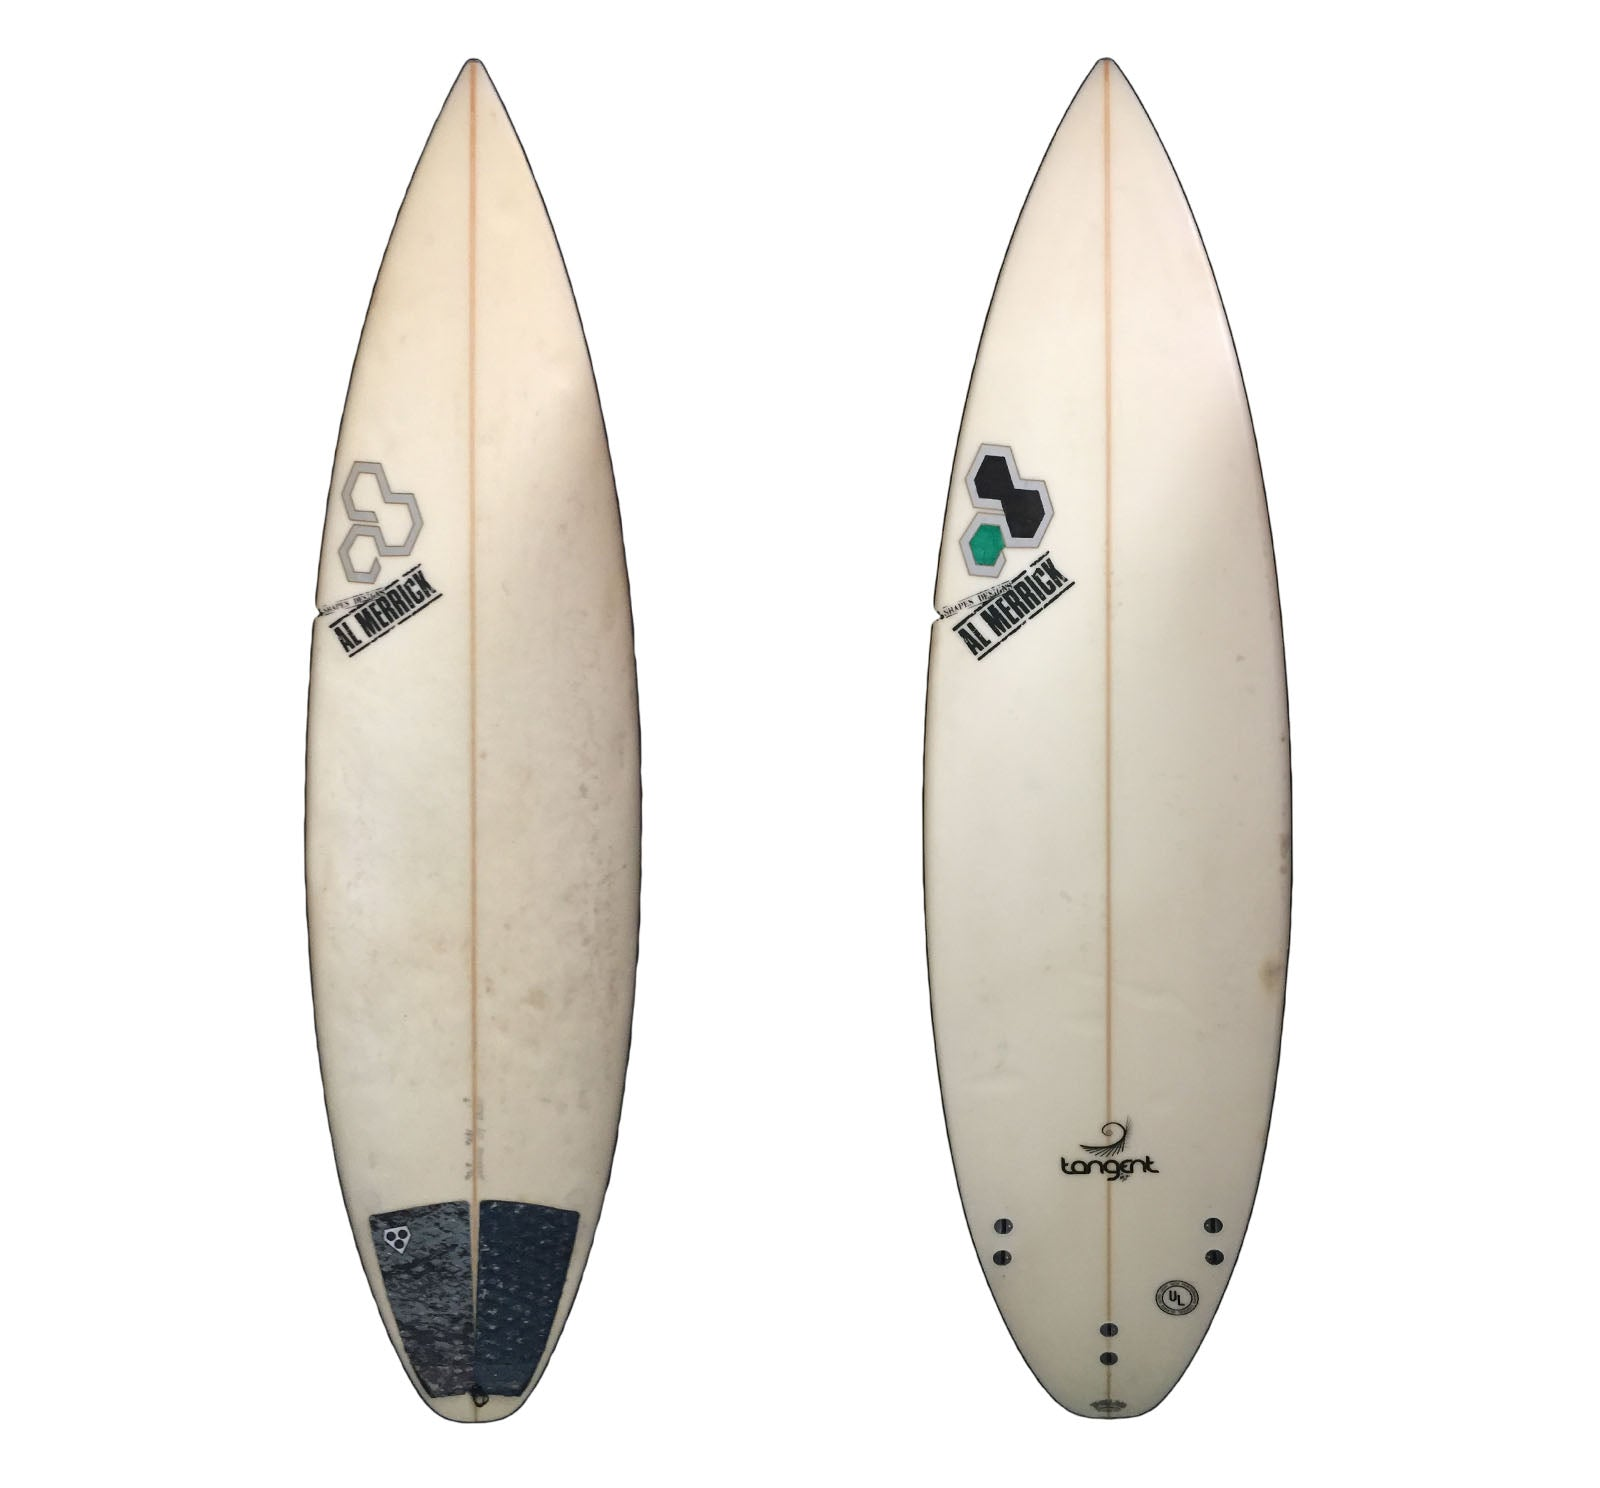 Channel Islands Tangent 6'1 Used Surfboard